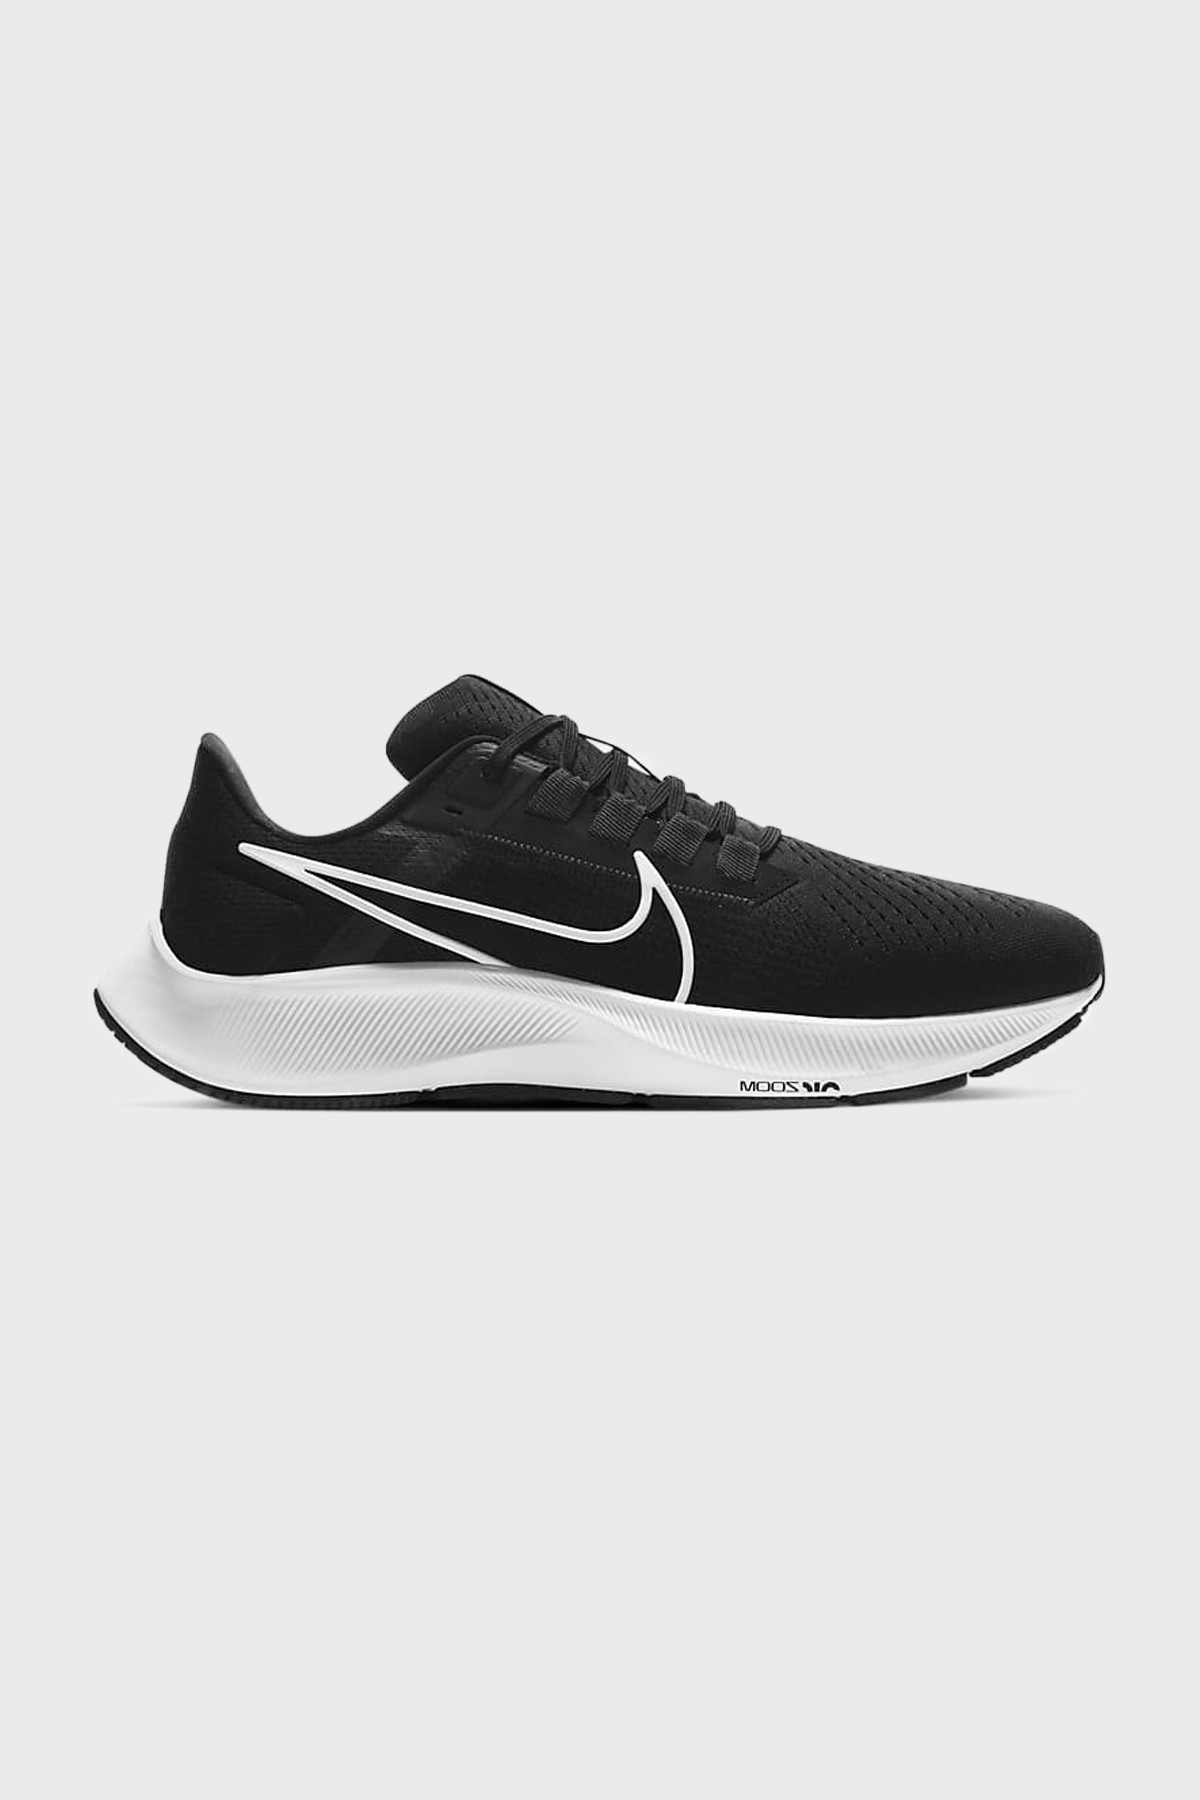 NIKE - Nike Air Zoom Pegasus 38 - BLACK WHITE